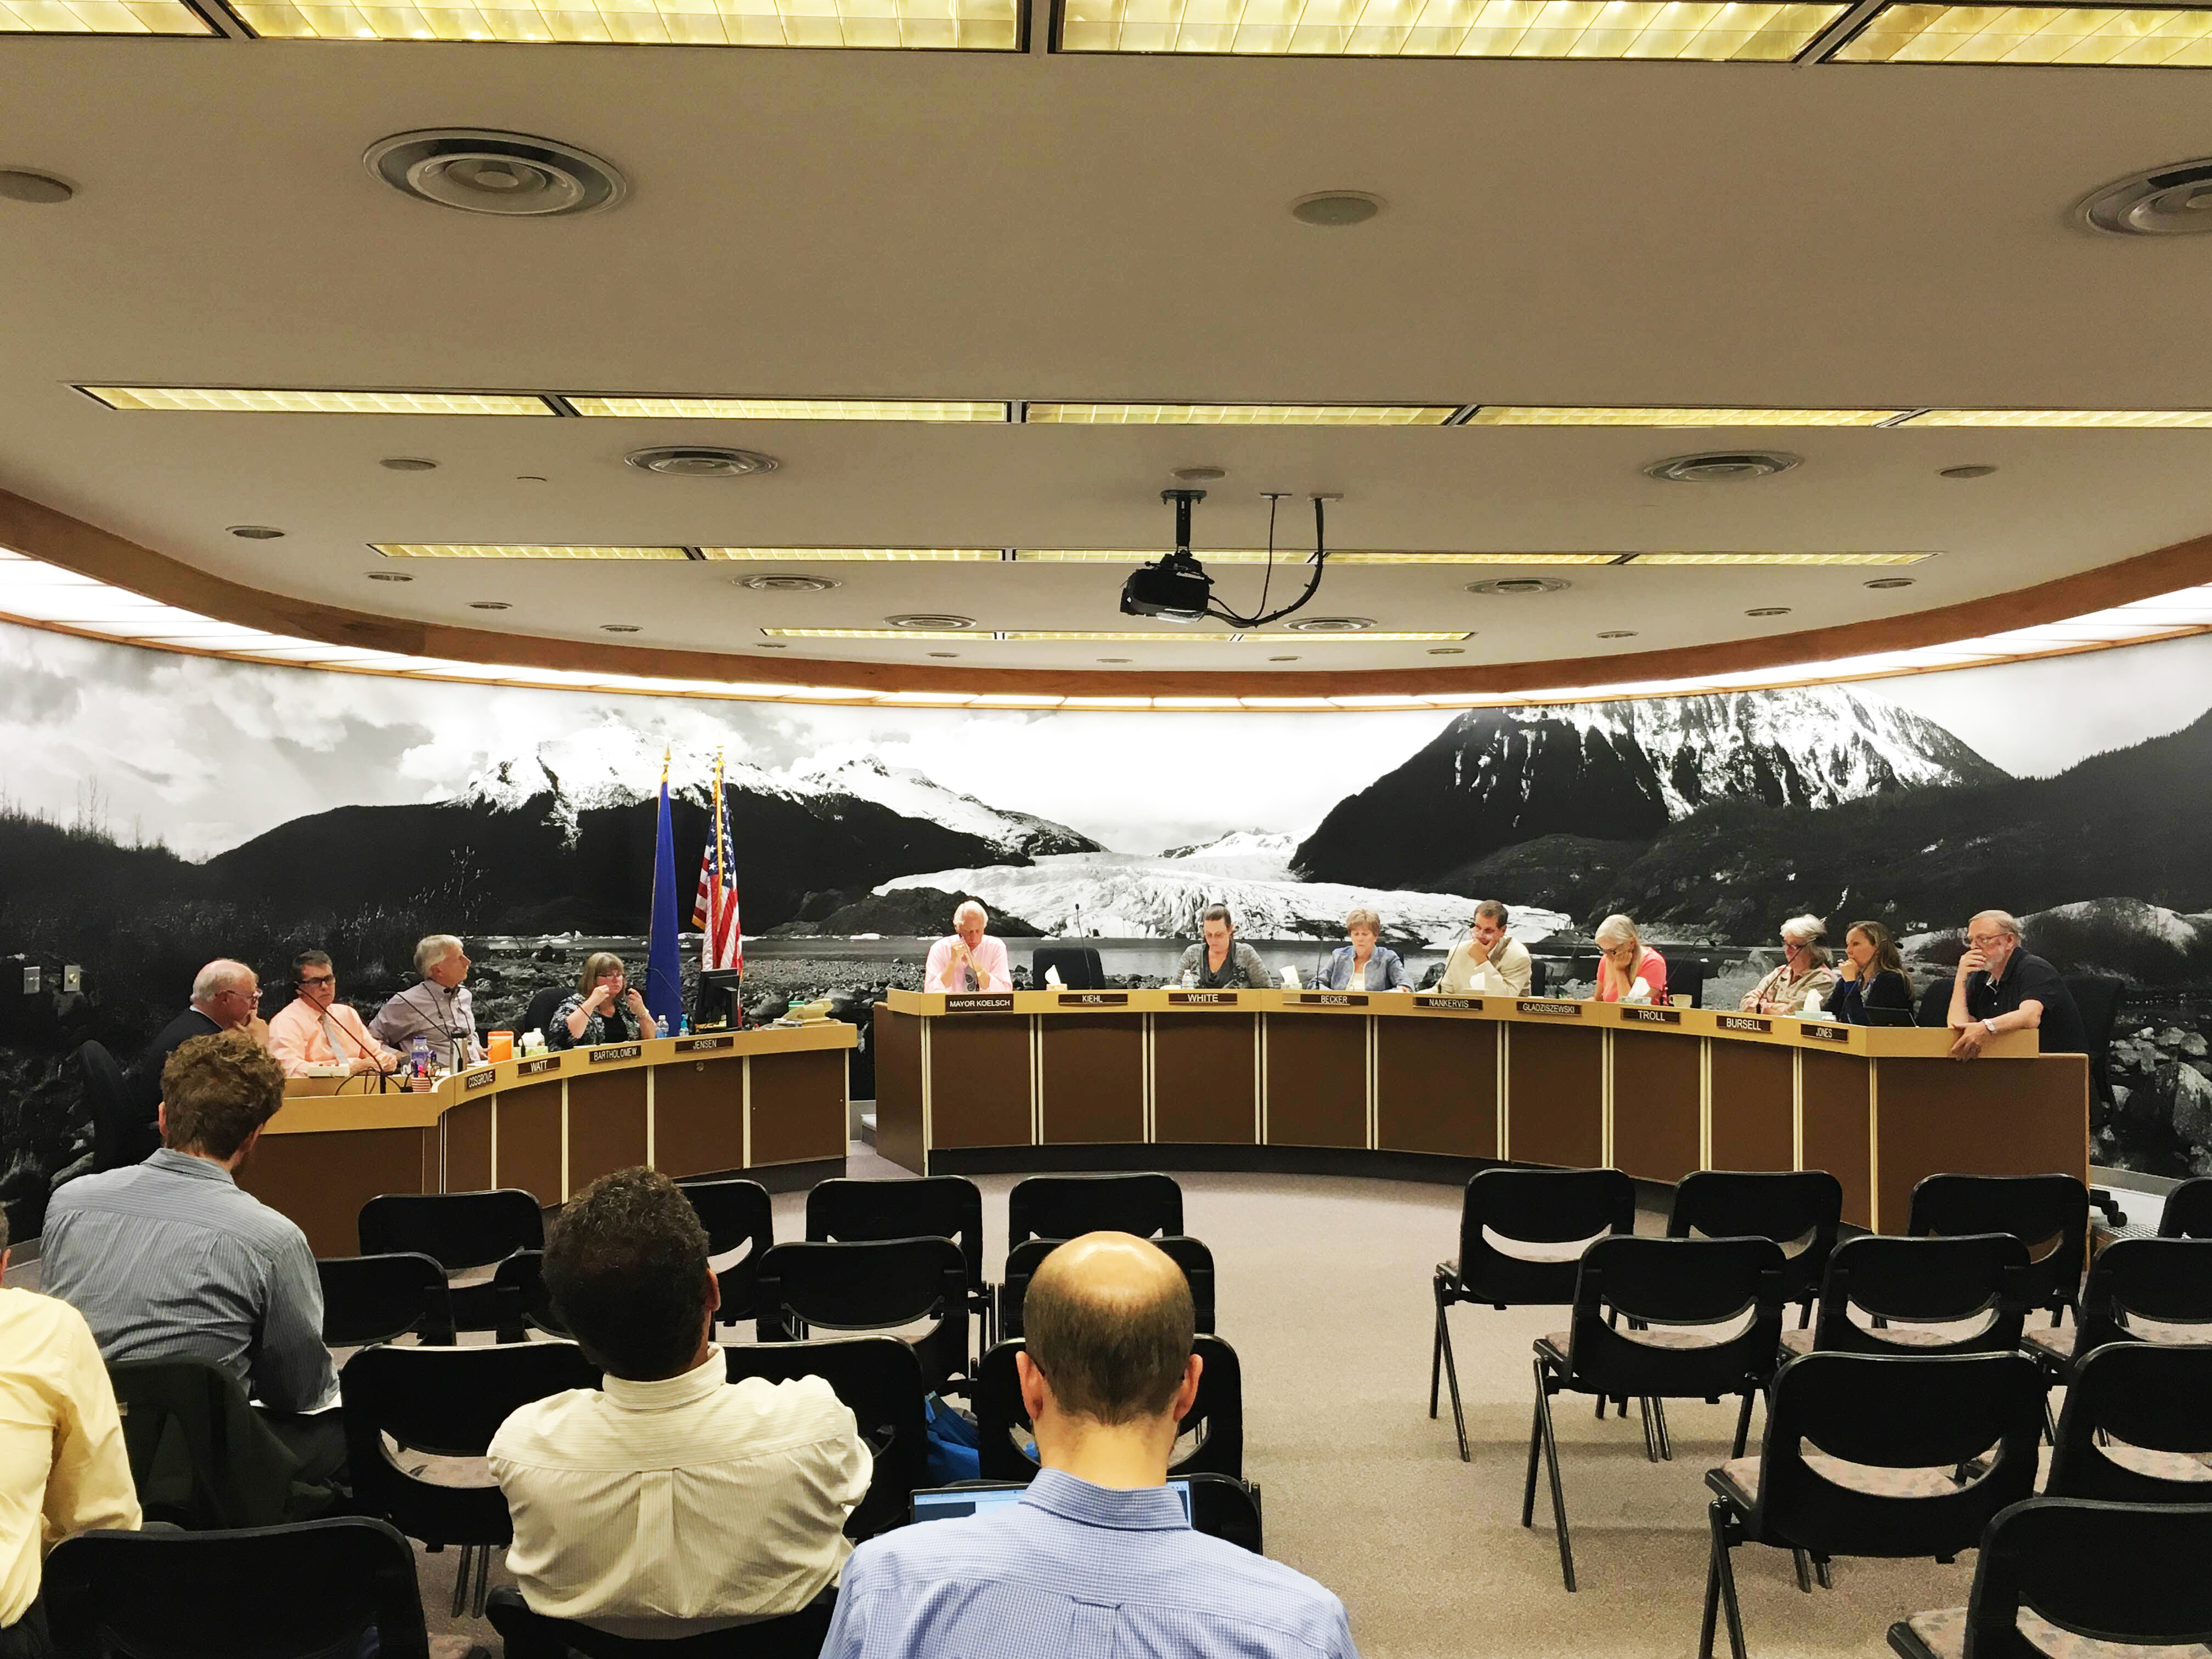 Assemblyman discuss possible solutions during the Juneau Assembly's Finance Committee meeting Aug. 11, 2016. (Photo by Lakeidra Chavis/ KTOO)